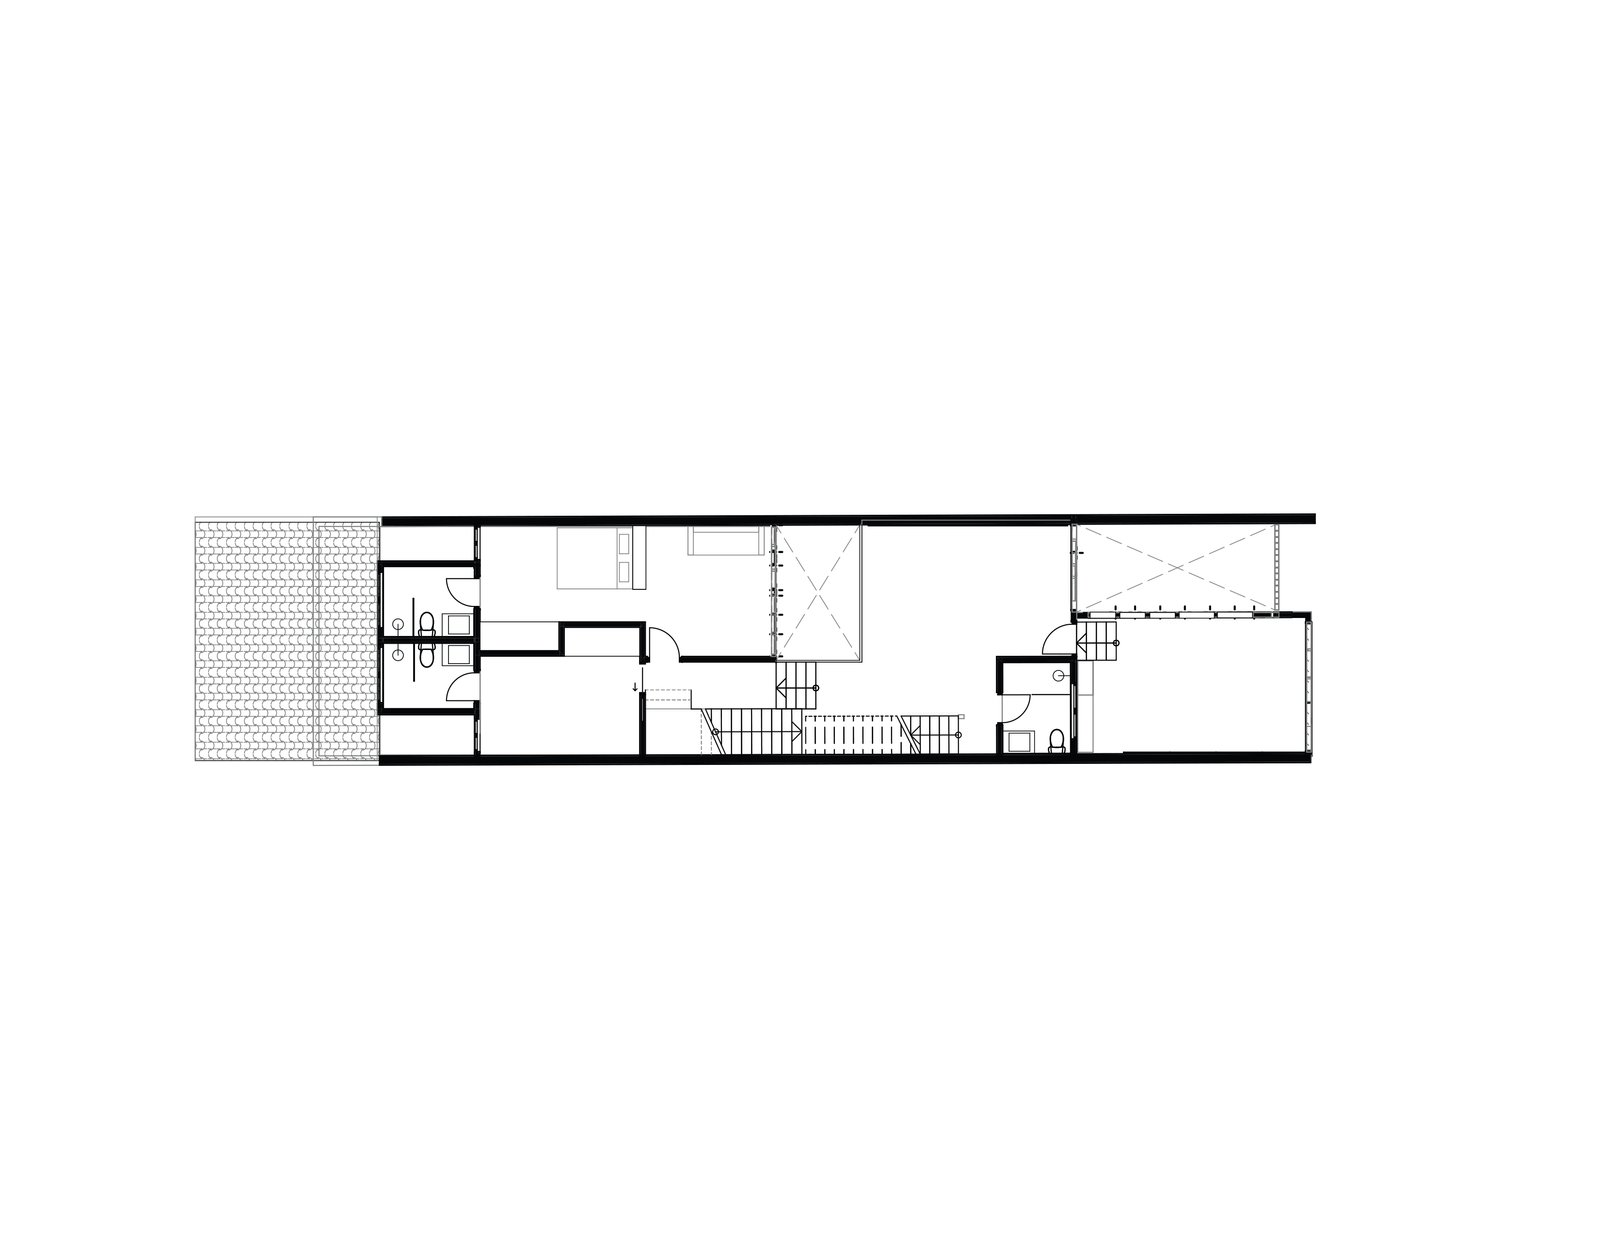 Heng House second floor plan  Photo 20 of 22 in An Imaginative Courtyard House in Singapore Makes Room for Multiple Generations